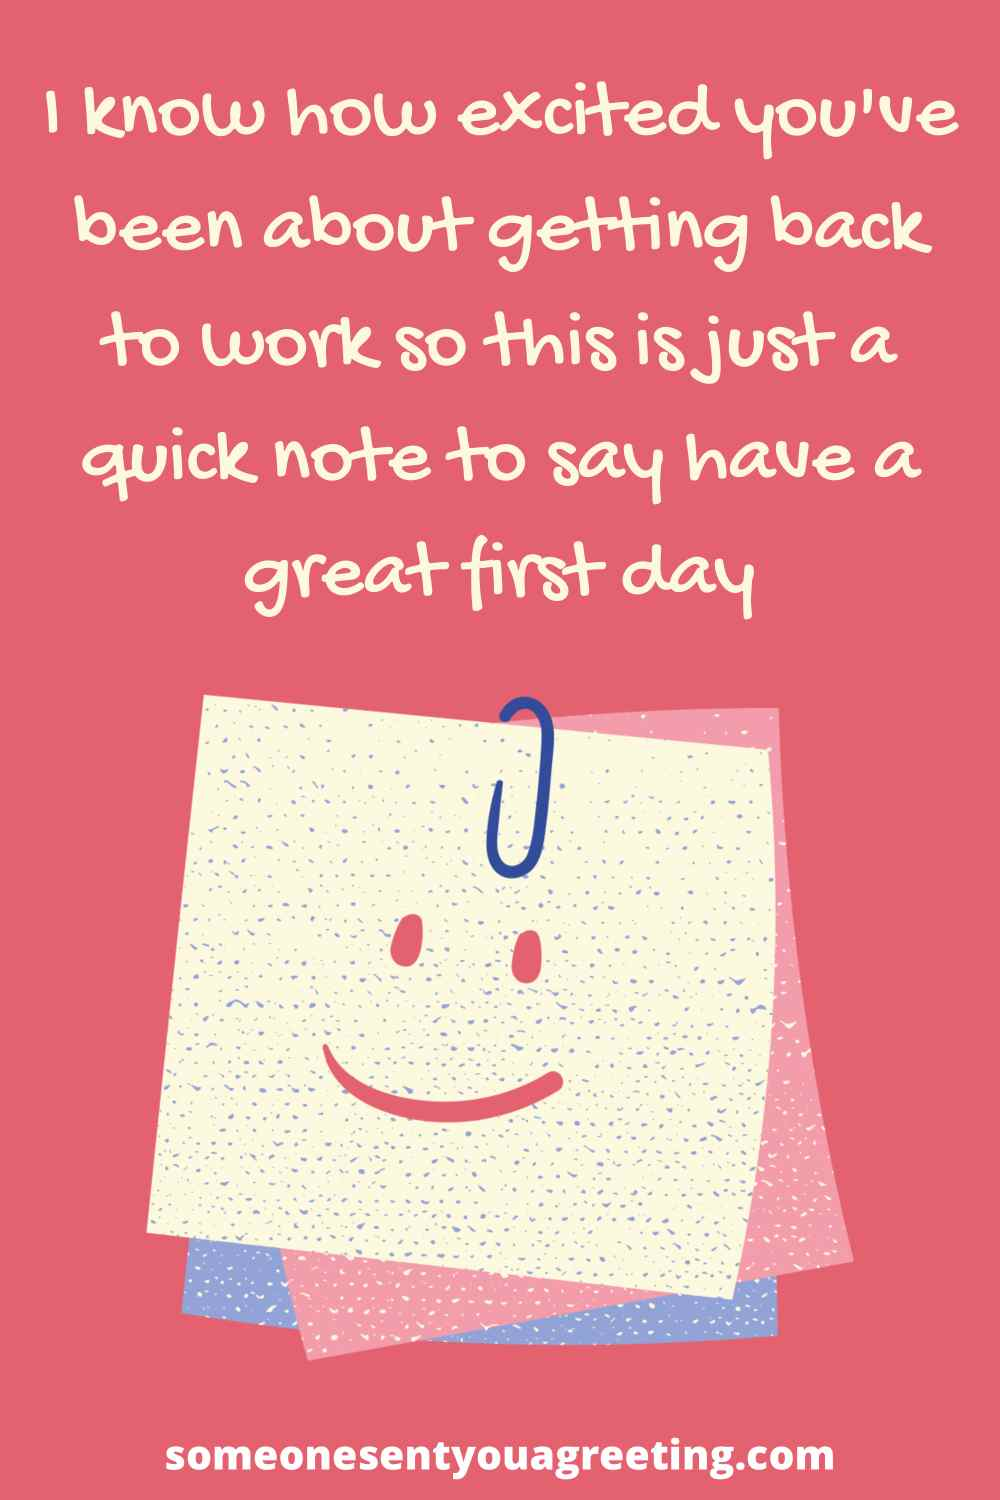 happy first day of work message